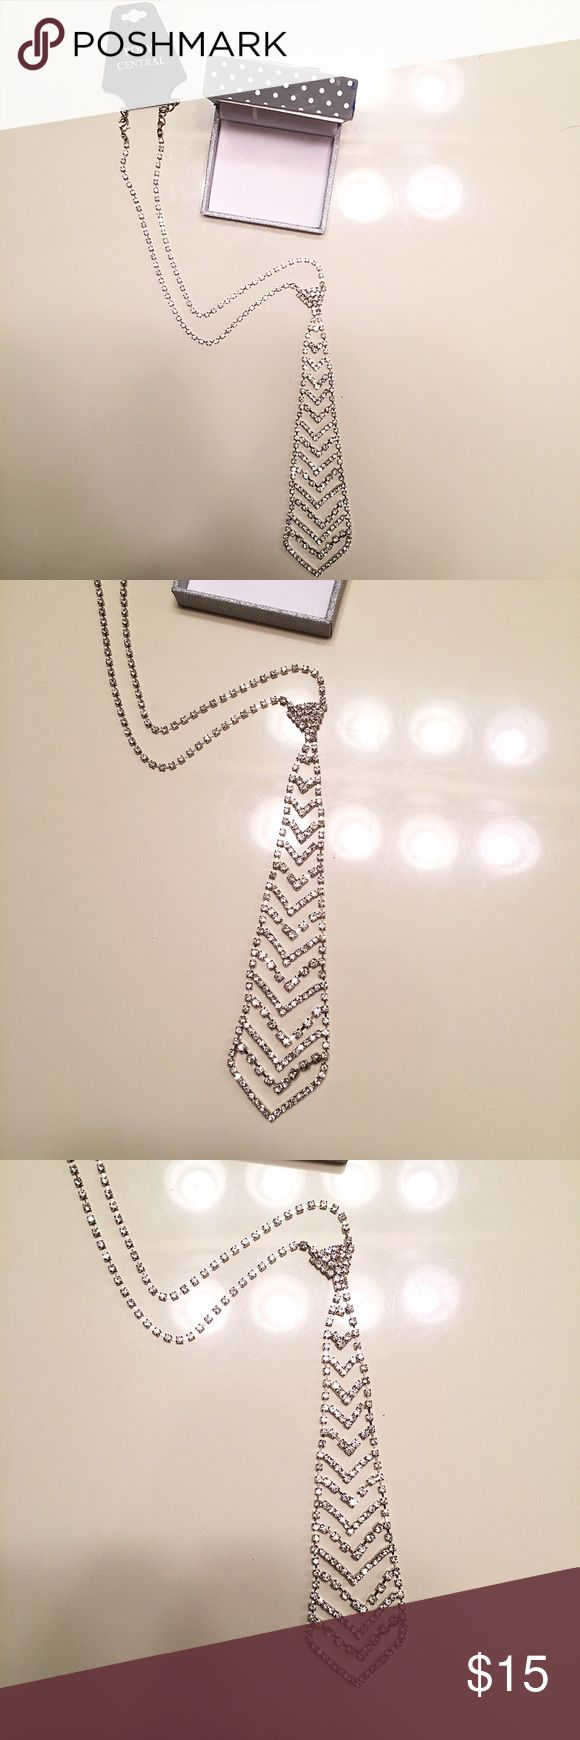 NEW Body Central rhinestone tie neckless Brand new, never worn and still with tags. Body Central rhinestone tie neckless. Body Central was my favorite store... why did they close down!? 🙁 this neckless would be perfect to surprise your man with (just imagine wearing nothing but this😏 lol) Body Central Jewelry Necklaces